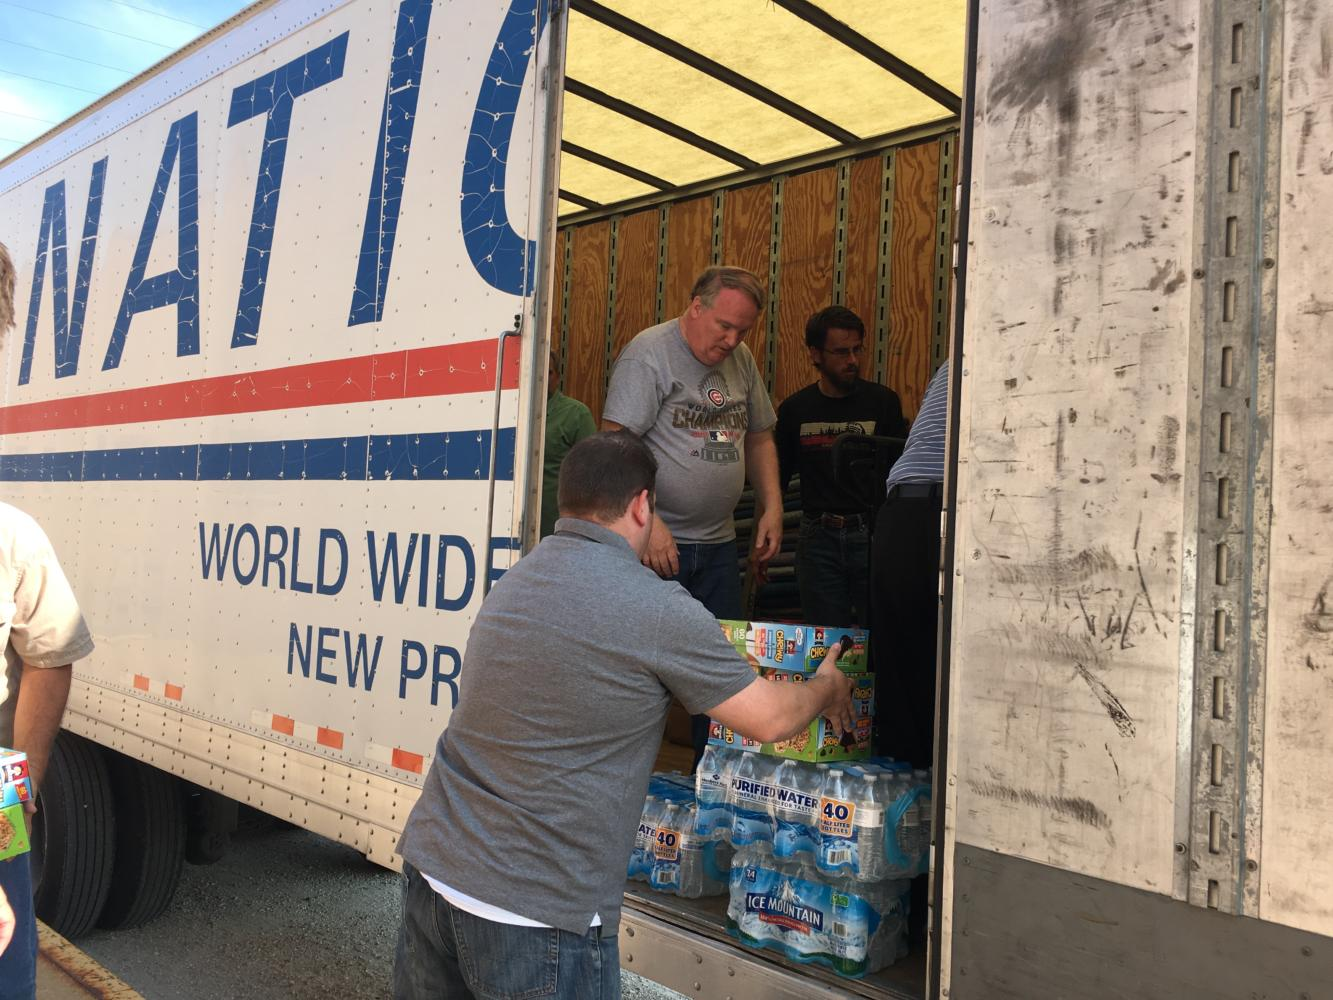 Employees help load the trailer full of donated supplies.